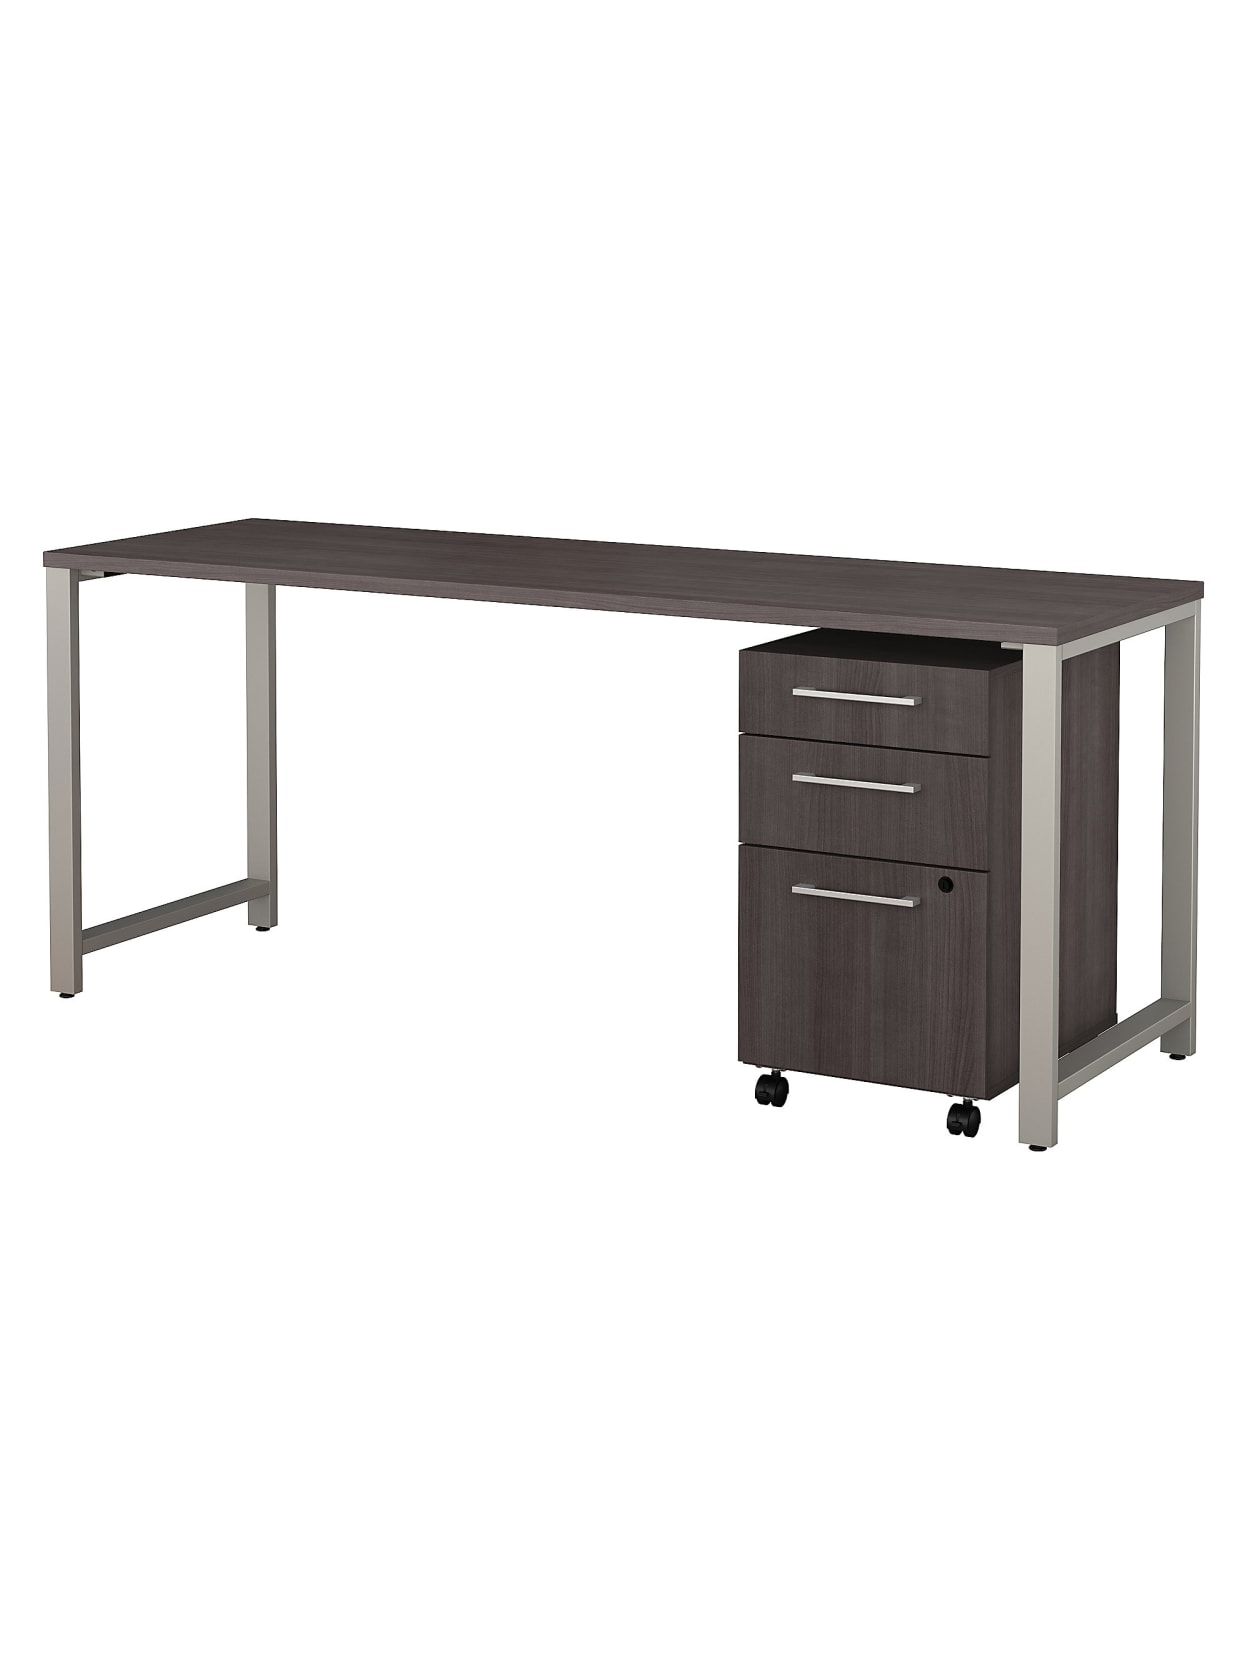 Bush Business Furniture 400 Series Table Desk With 3 Drawer Mobile File Cabinet 72 W X 24 D Storm Gray Standard Delivery Office Depot